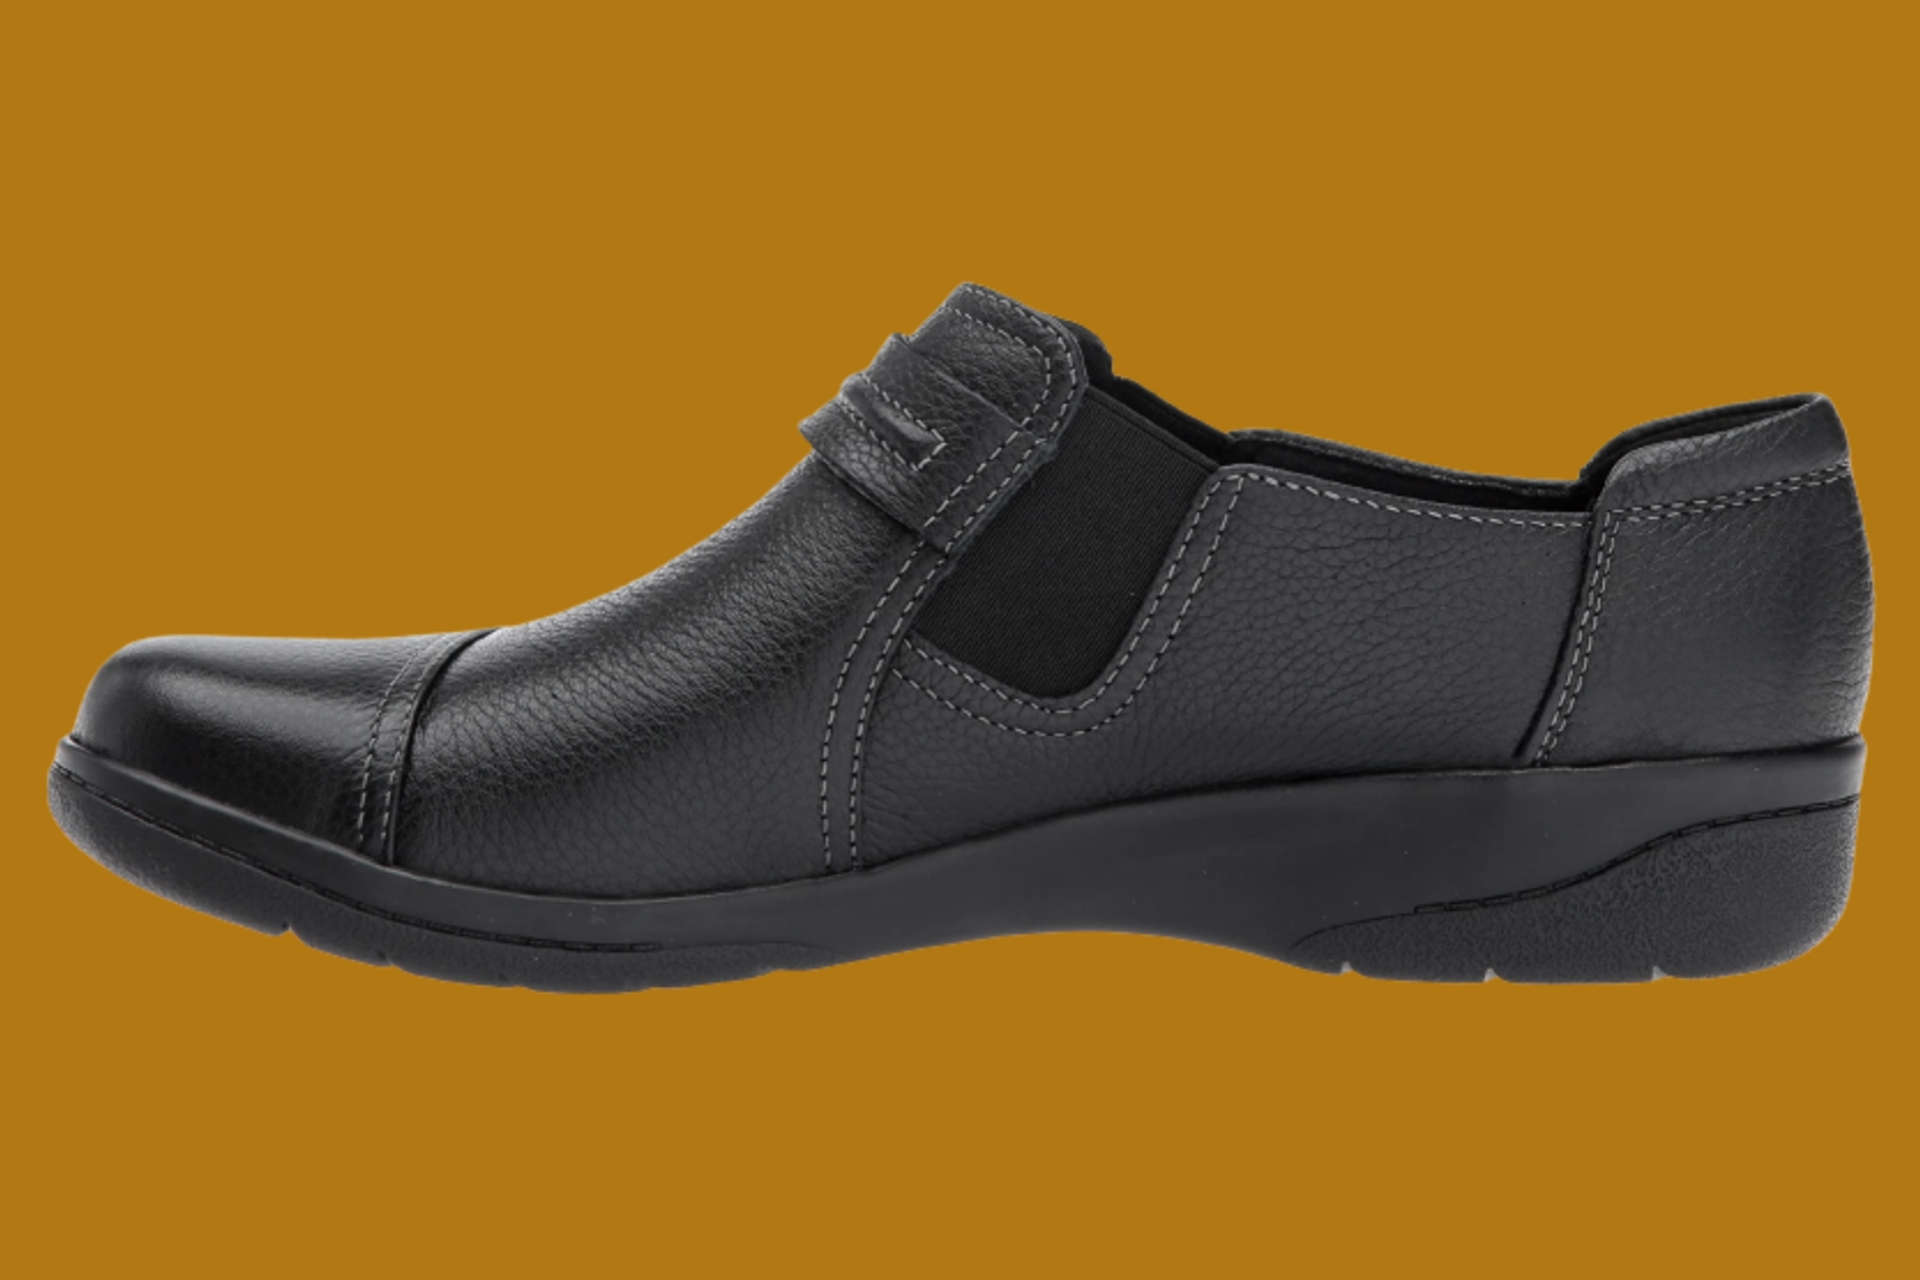 Recommended women's office shoes for plantar fasciitis